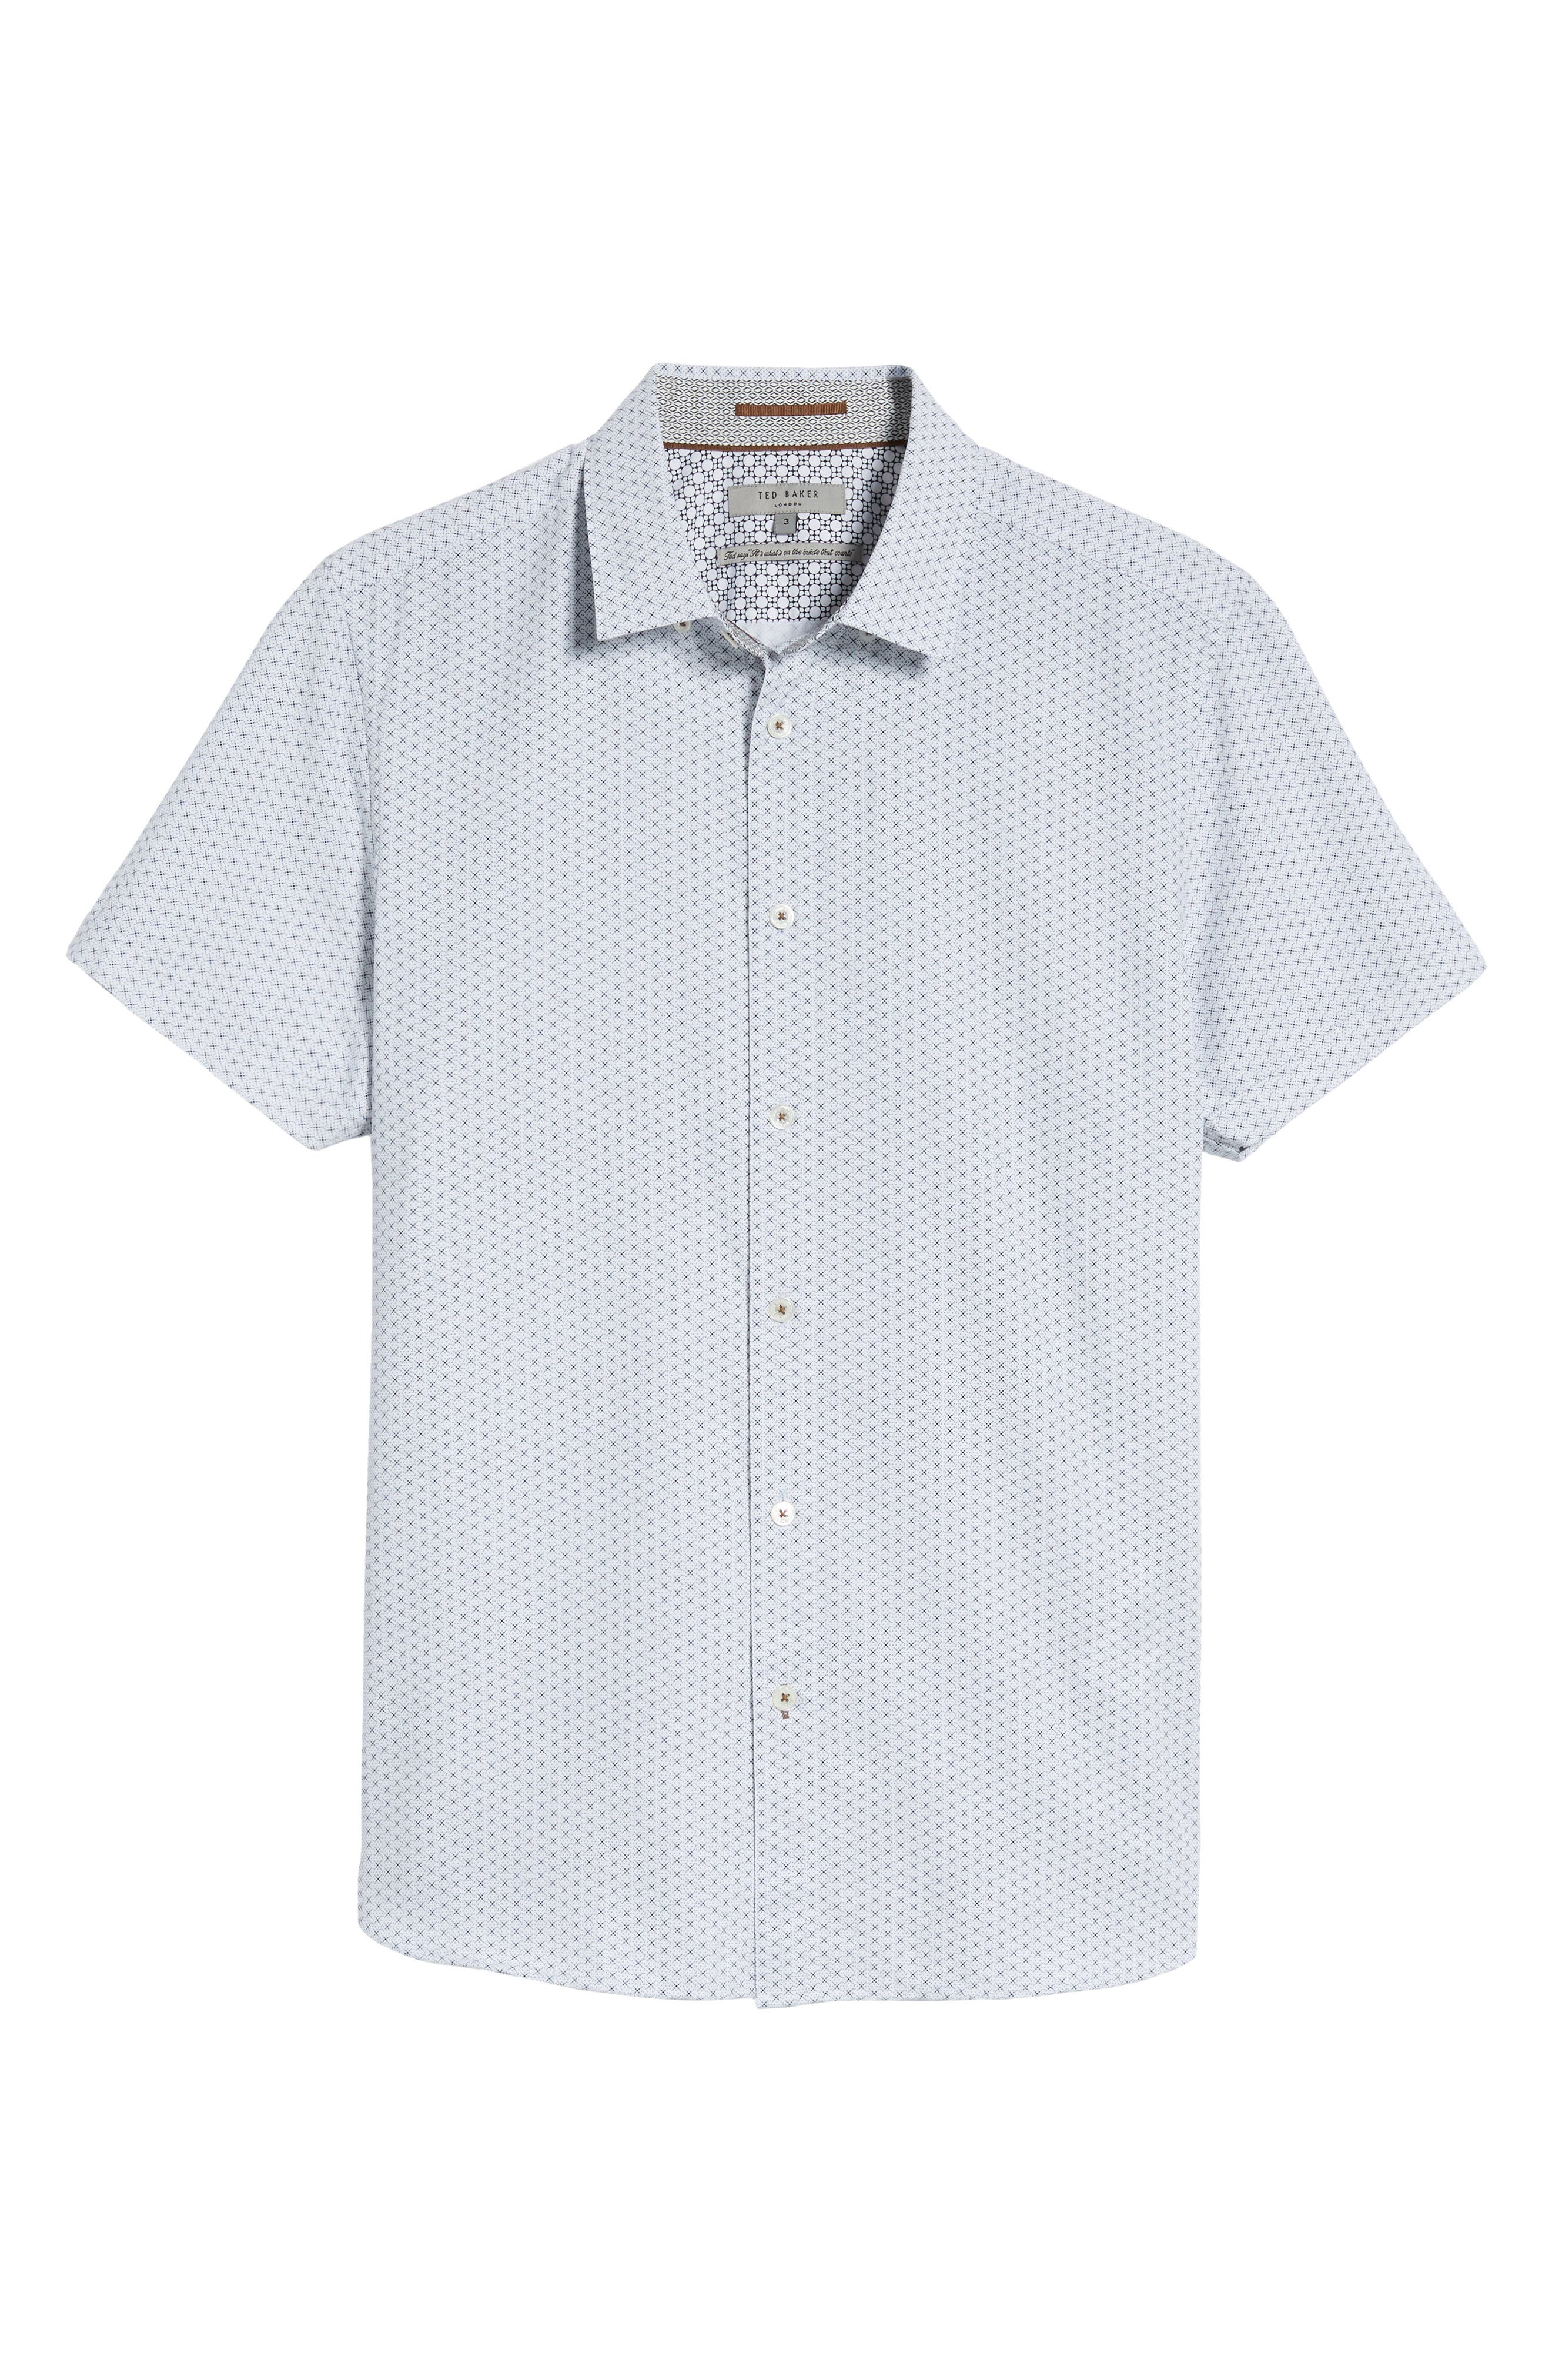 Geo Polynosic Slim Fit Woven Shirt,                             Alternate thumbnail 6, color,                             110